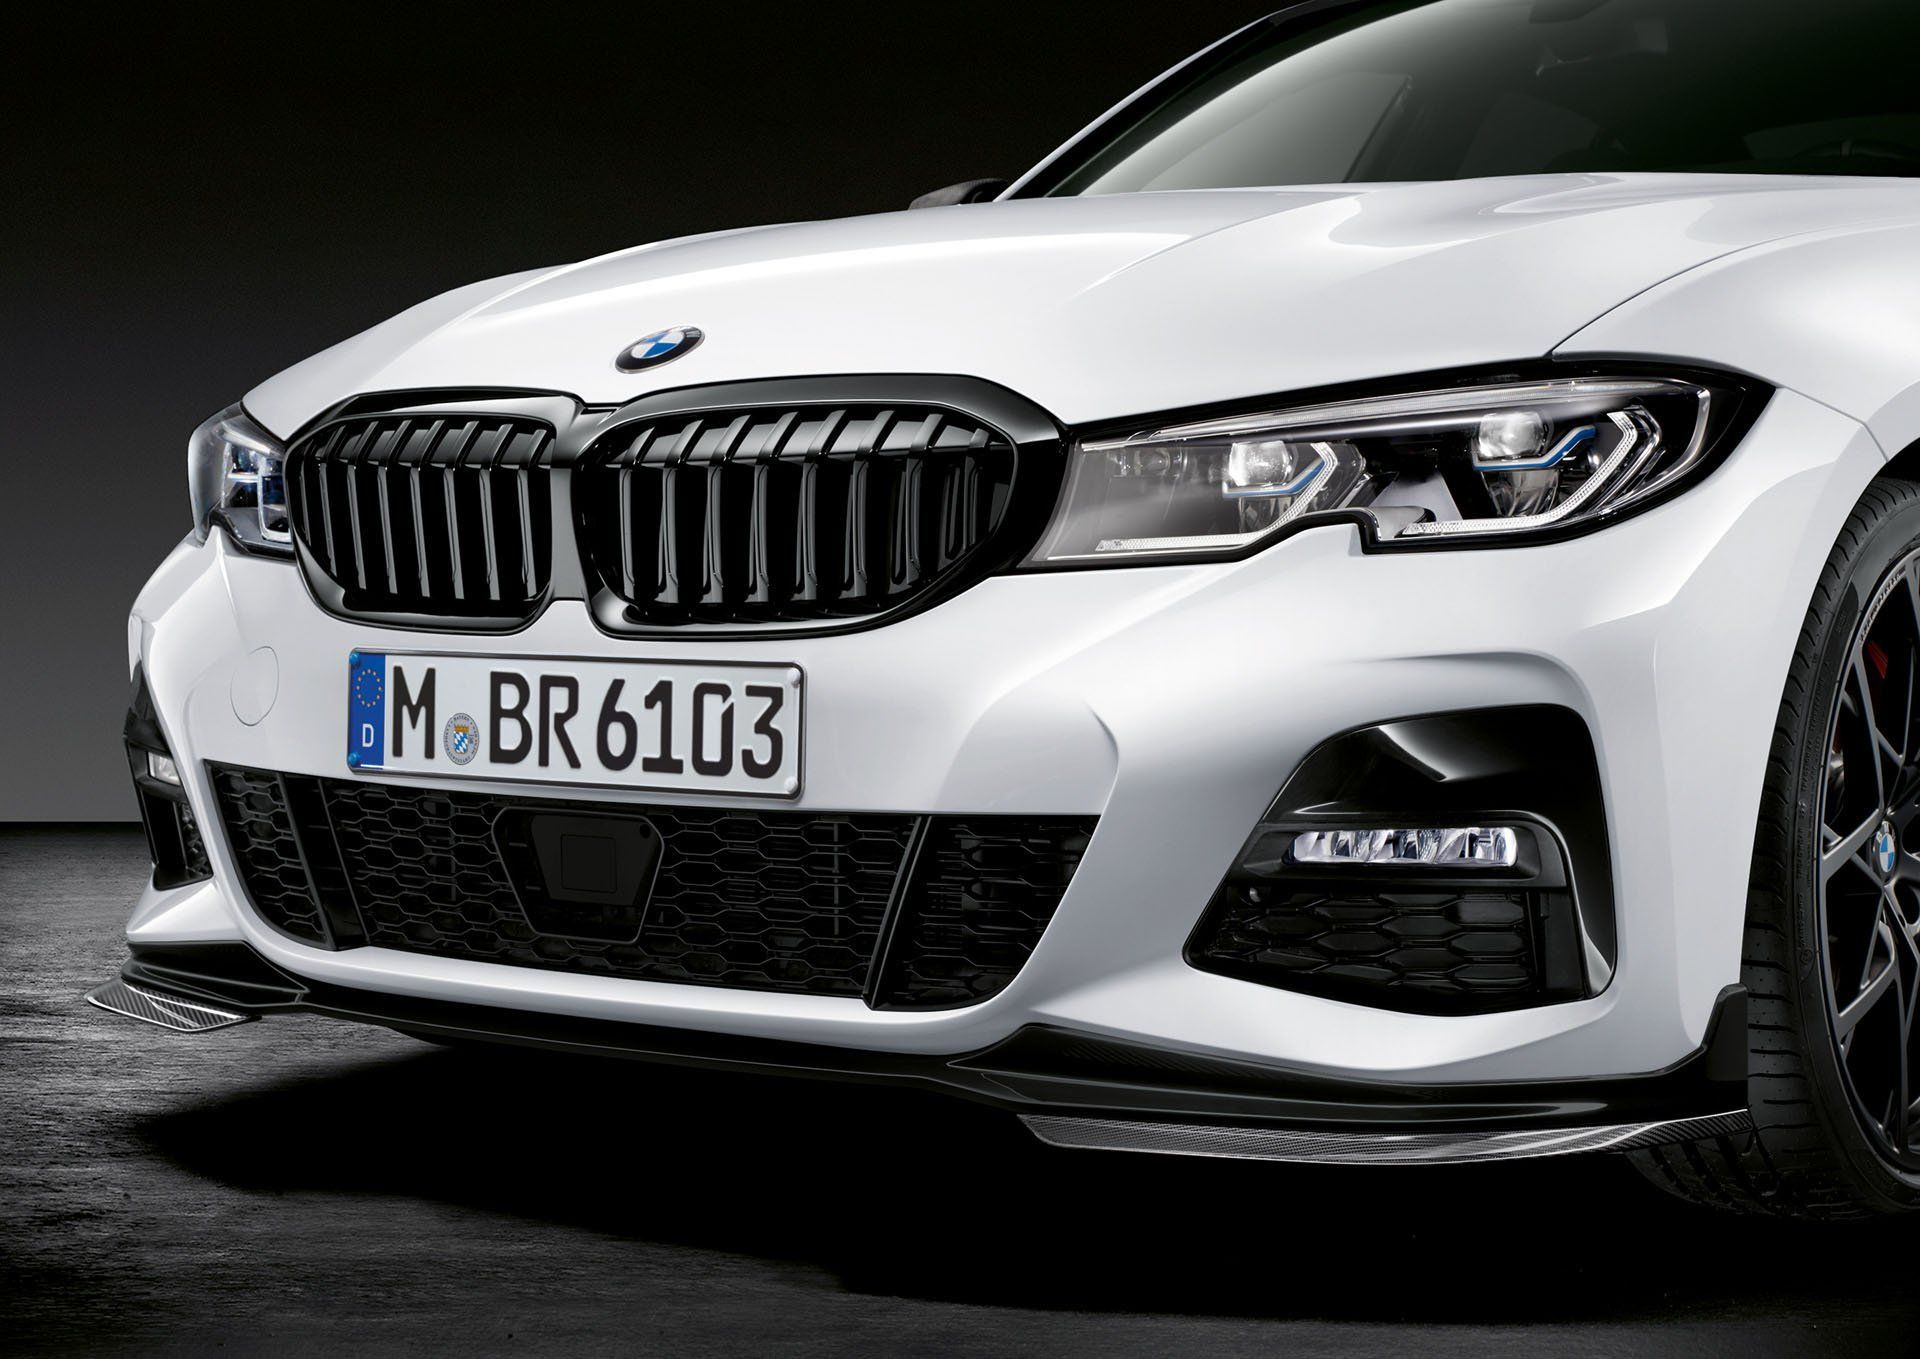 Bmw S New 3 Series Gets Sportier With Fresh M Performance Parts Carscoops Bmw 3 Series Sports Car Bmw